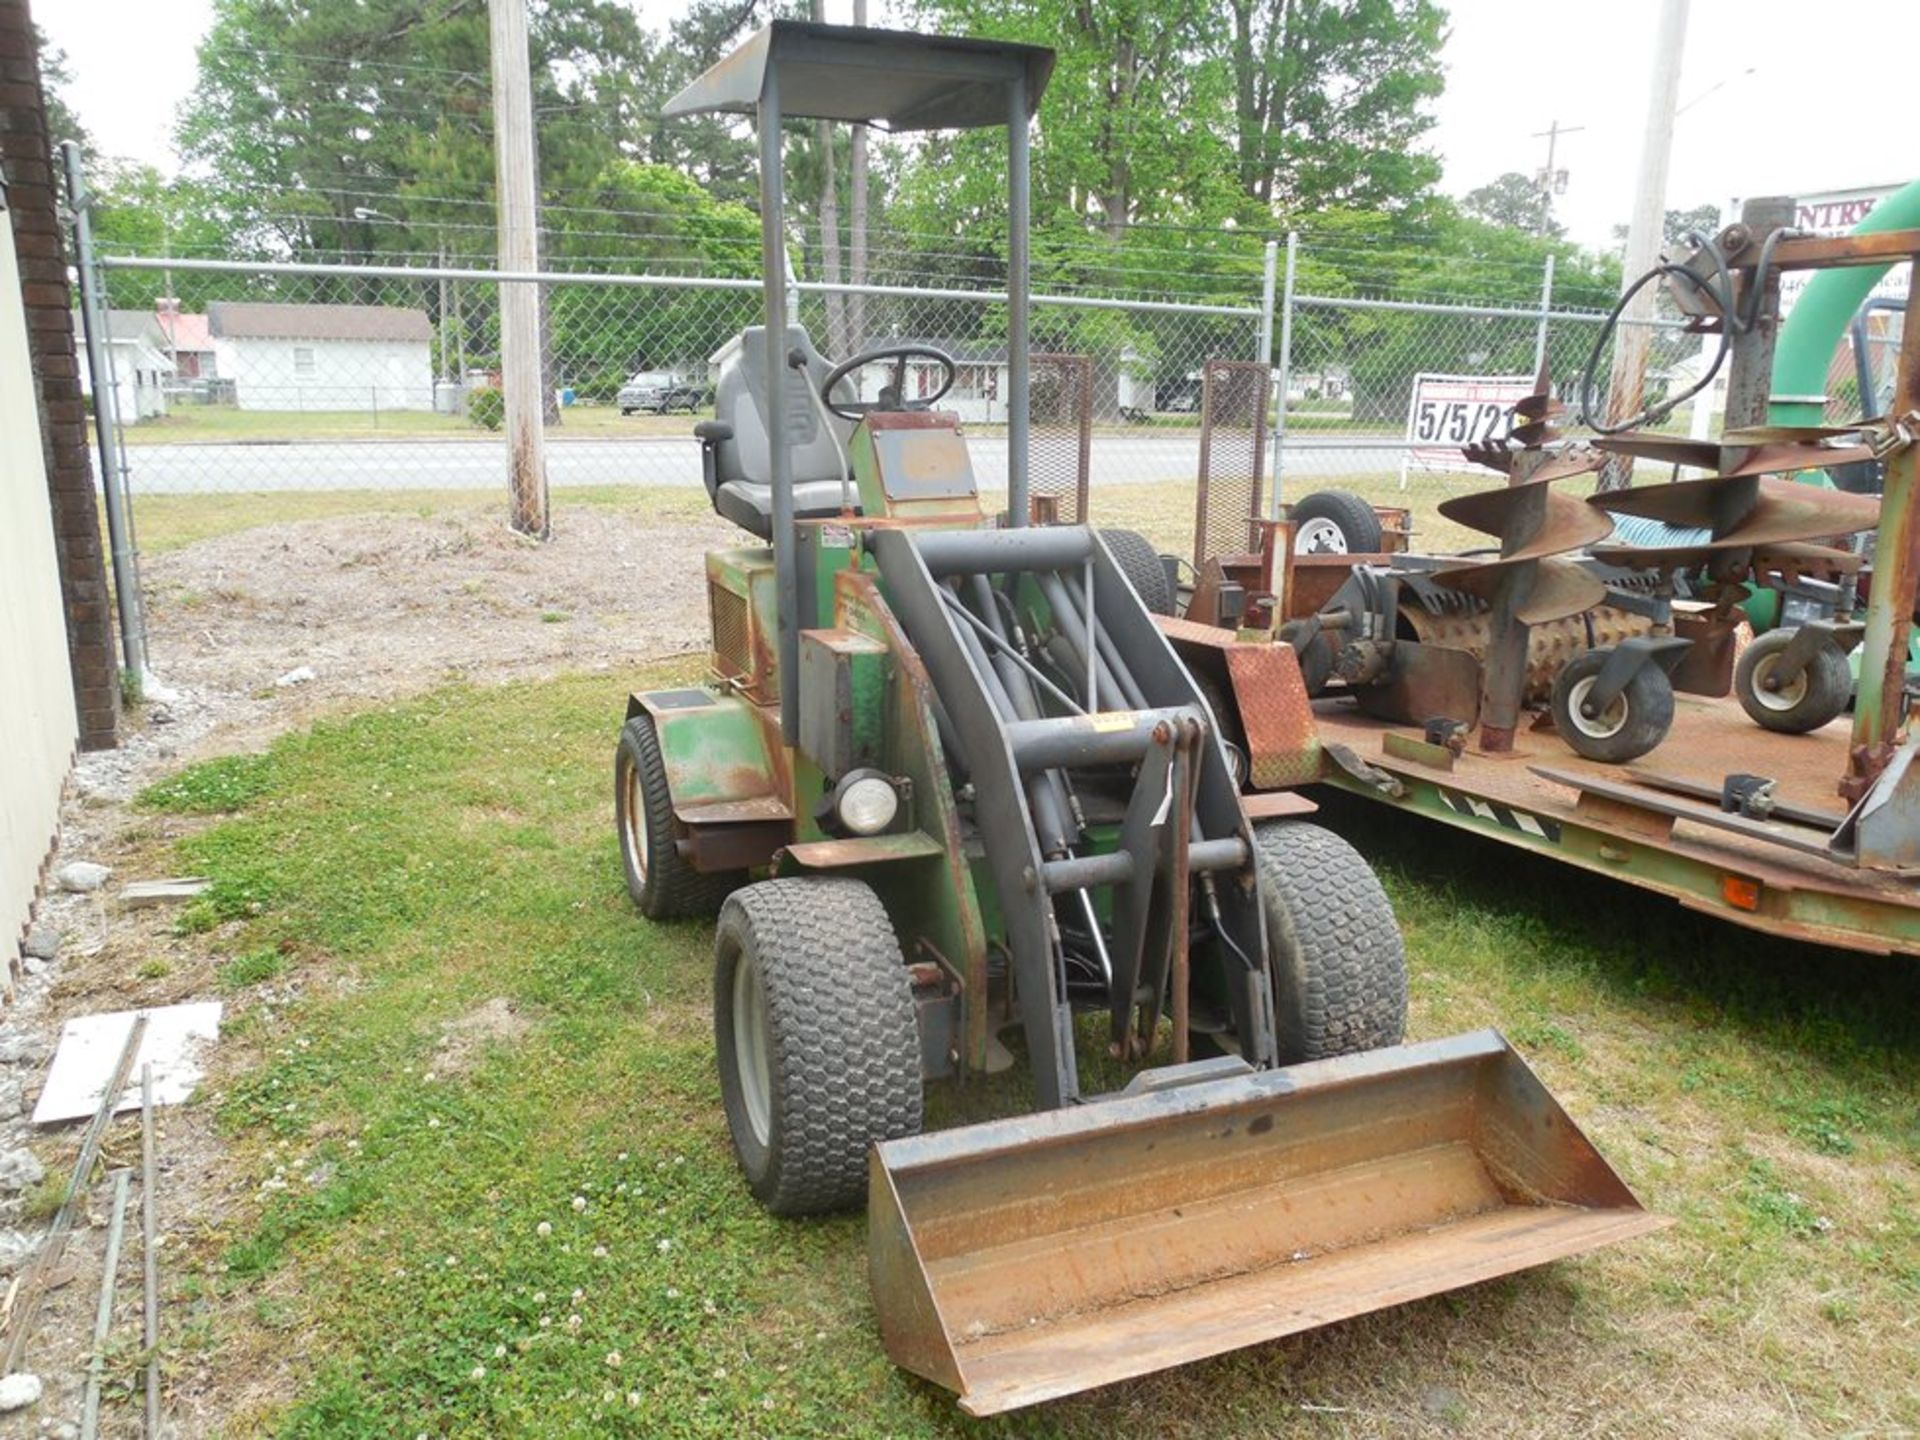 Power Trac PT-2425 Mini Skid Steer ser# 18928 with trailer, power rake, tree spade, front bucket, - Image 3 of 13